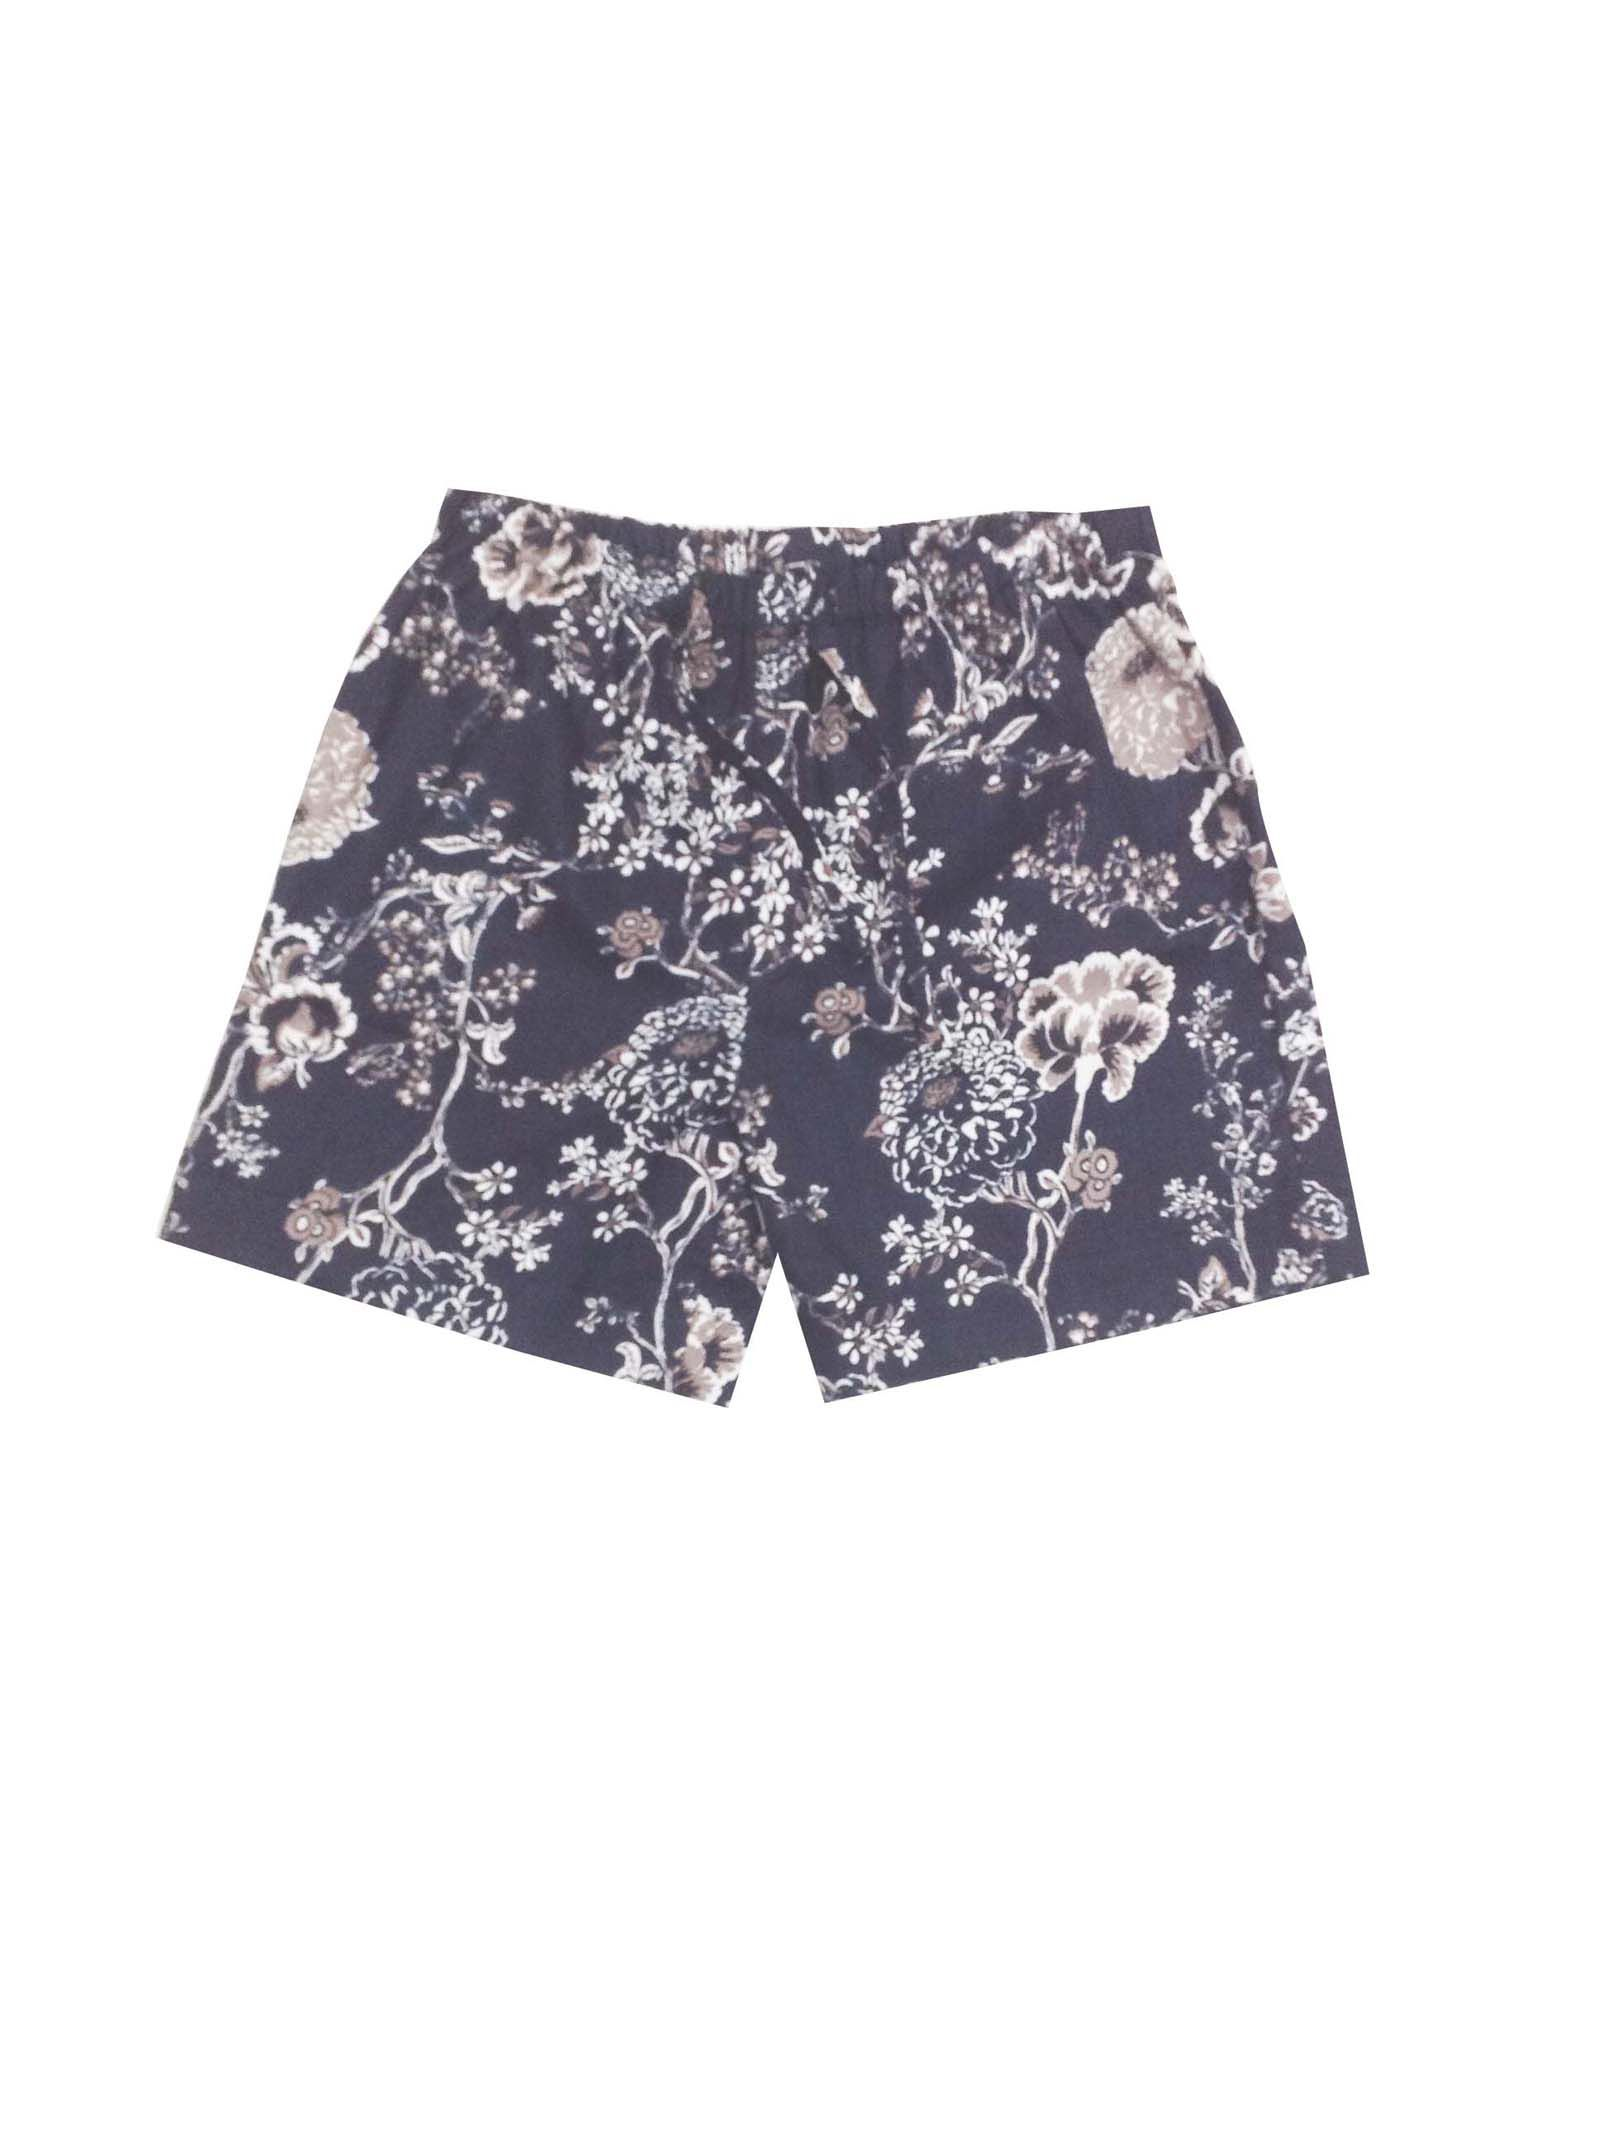 Euphoria Short For Girls Casual Printed Cotton